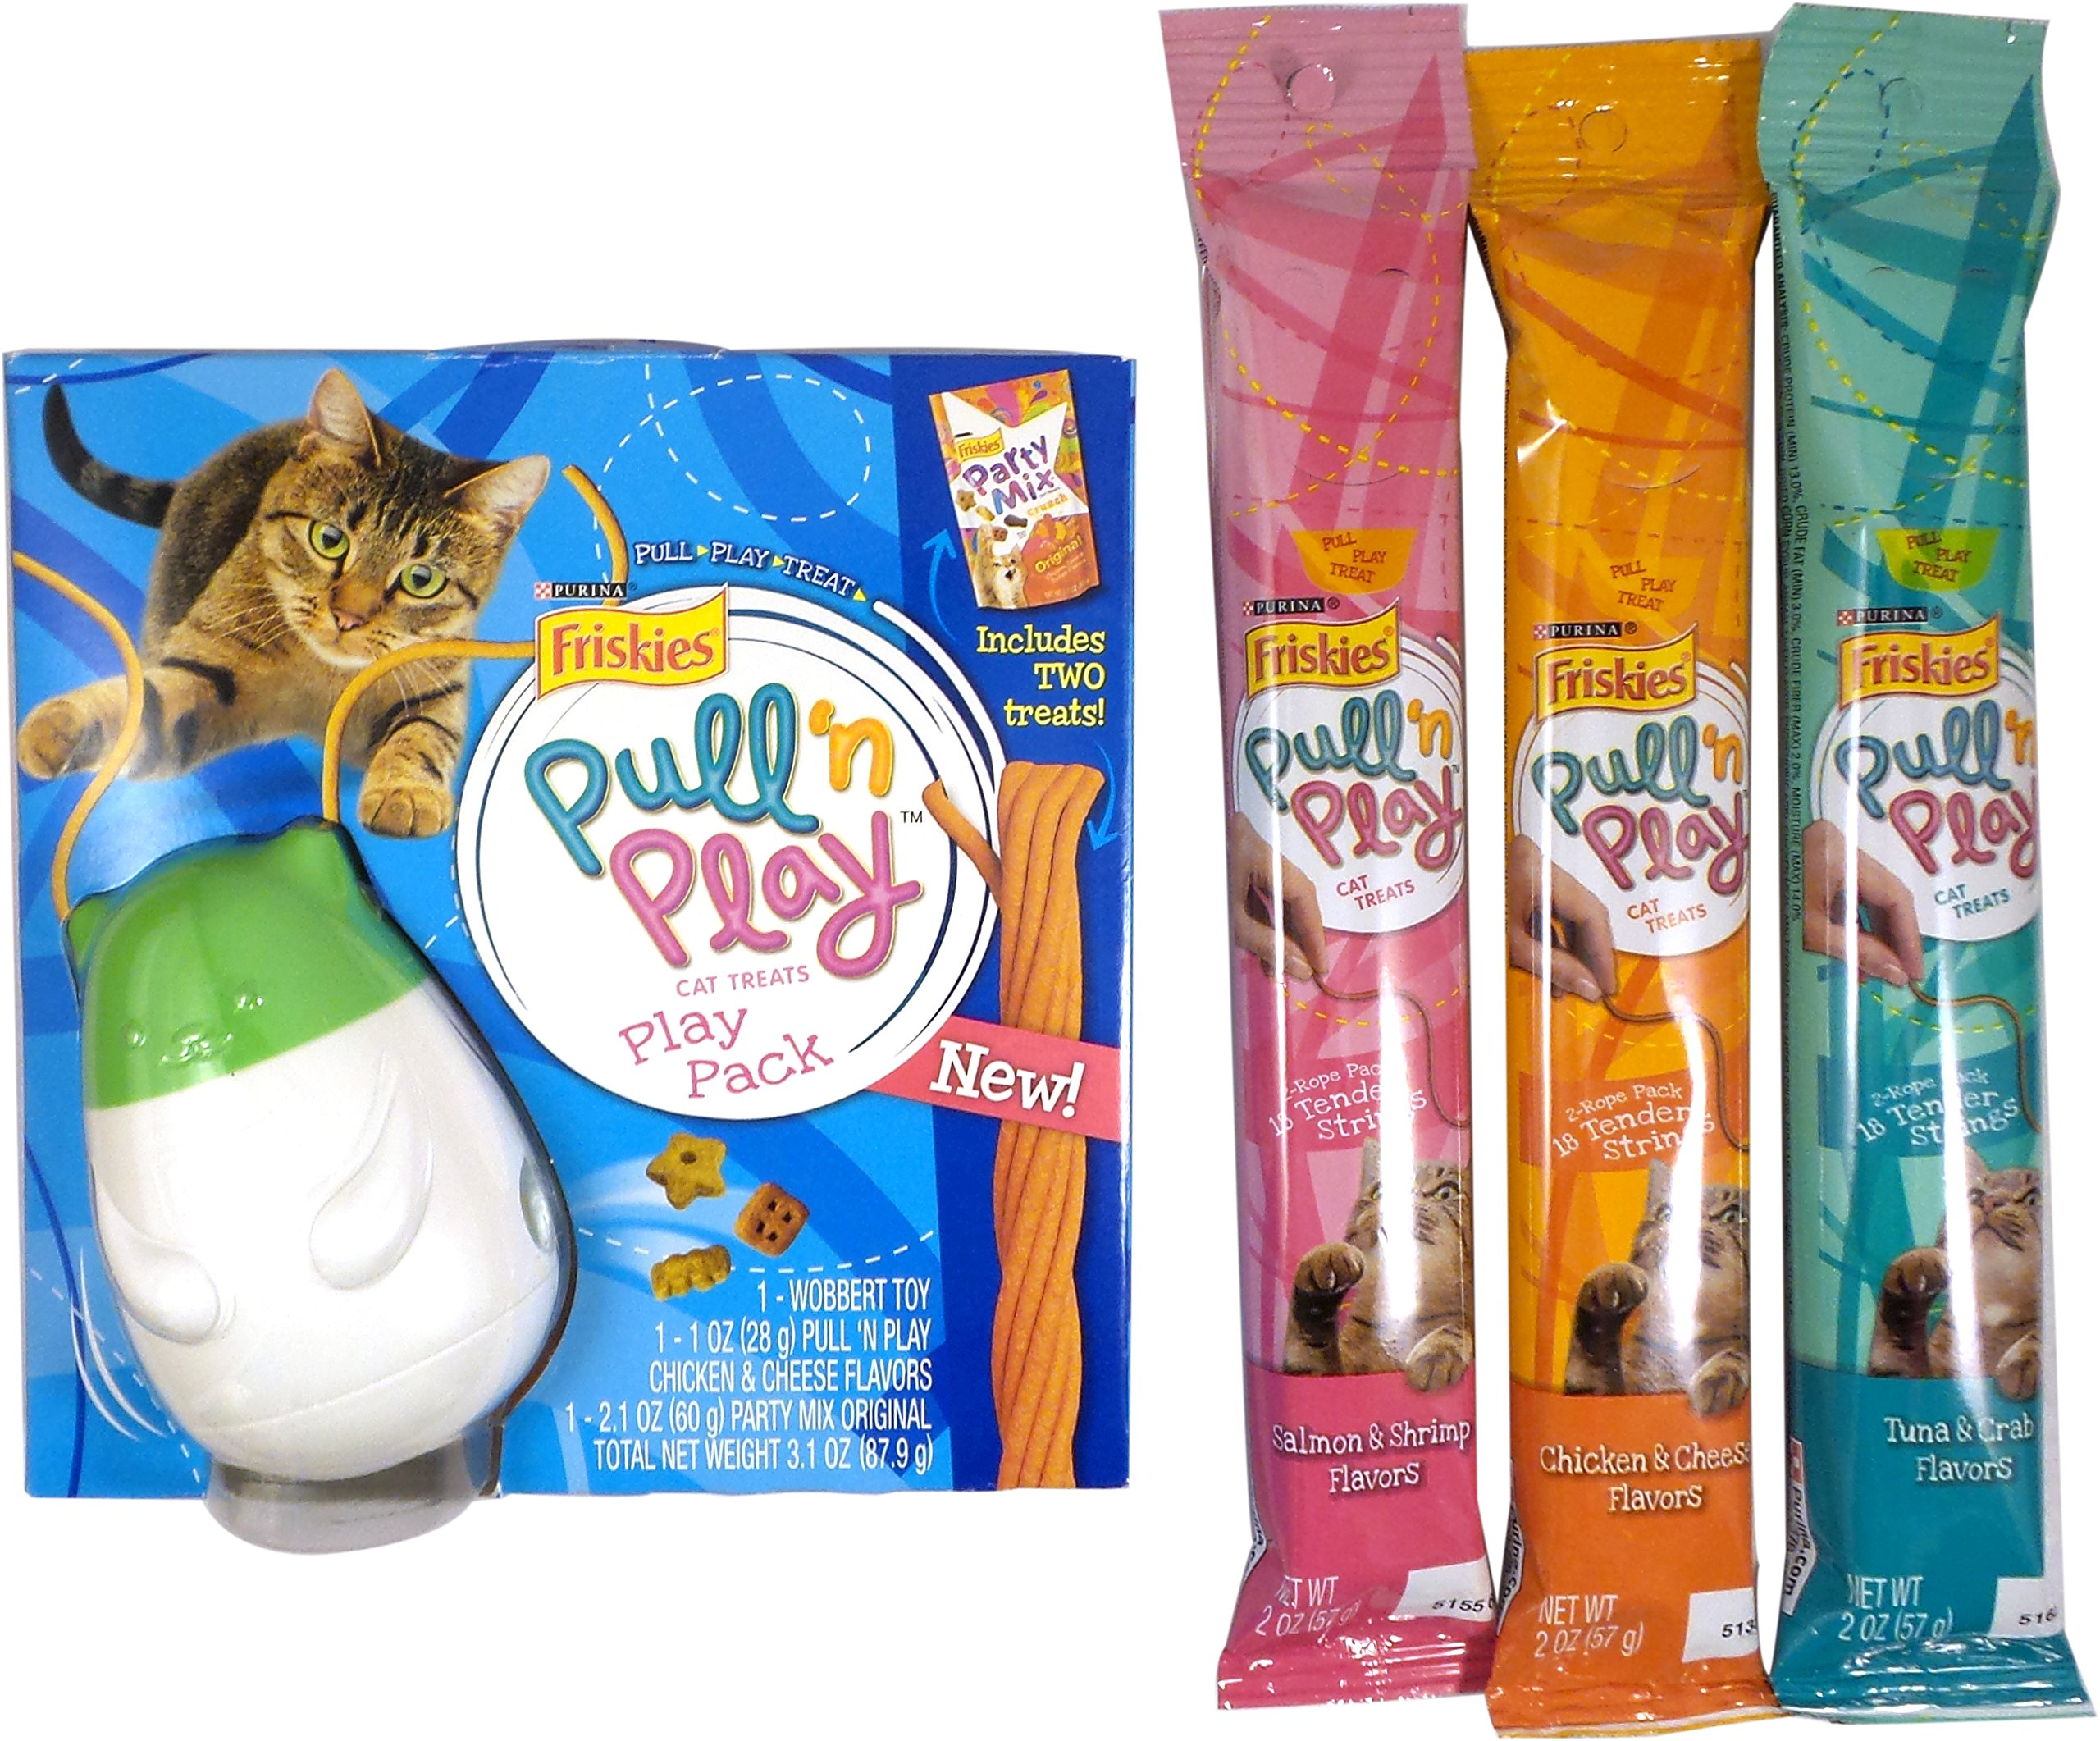 Friskies Pull N Play Cat Treat Bundle: 1 Wobbert Toy, 1 Friskies Party Mix, Chicken & Cheese, Salmon & Shrimp and Tuna & Crab Pullnplay String Treats